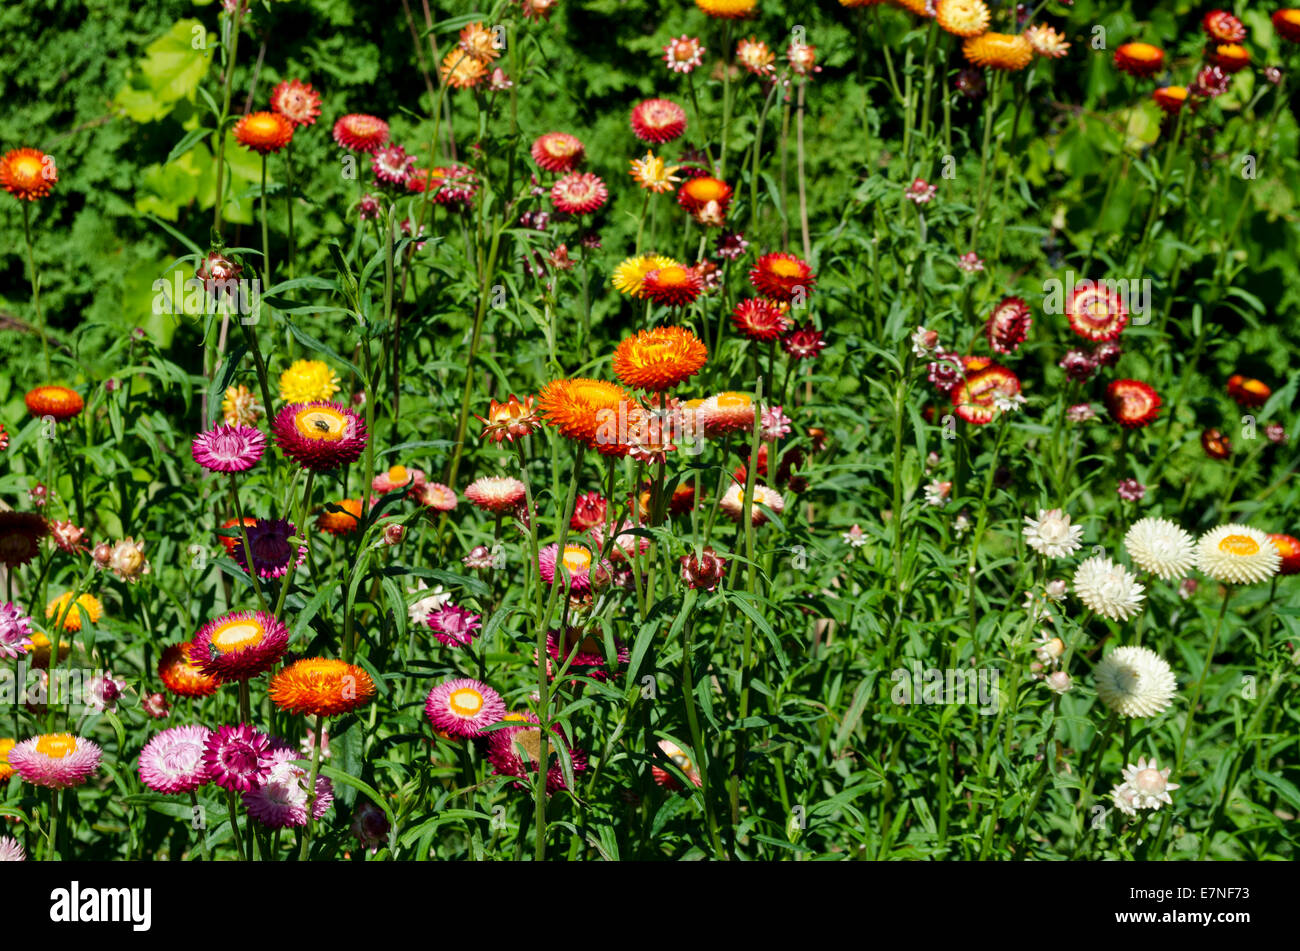 Everlasting Flowers Stock Photos Everlasting Flowers Stock Images